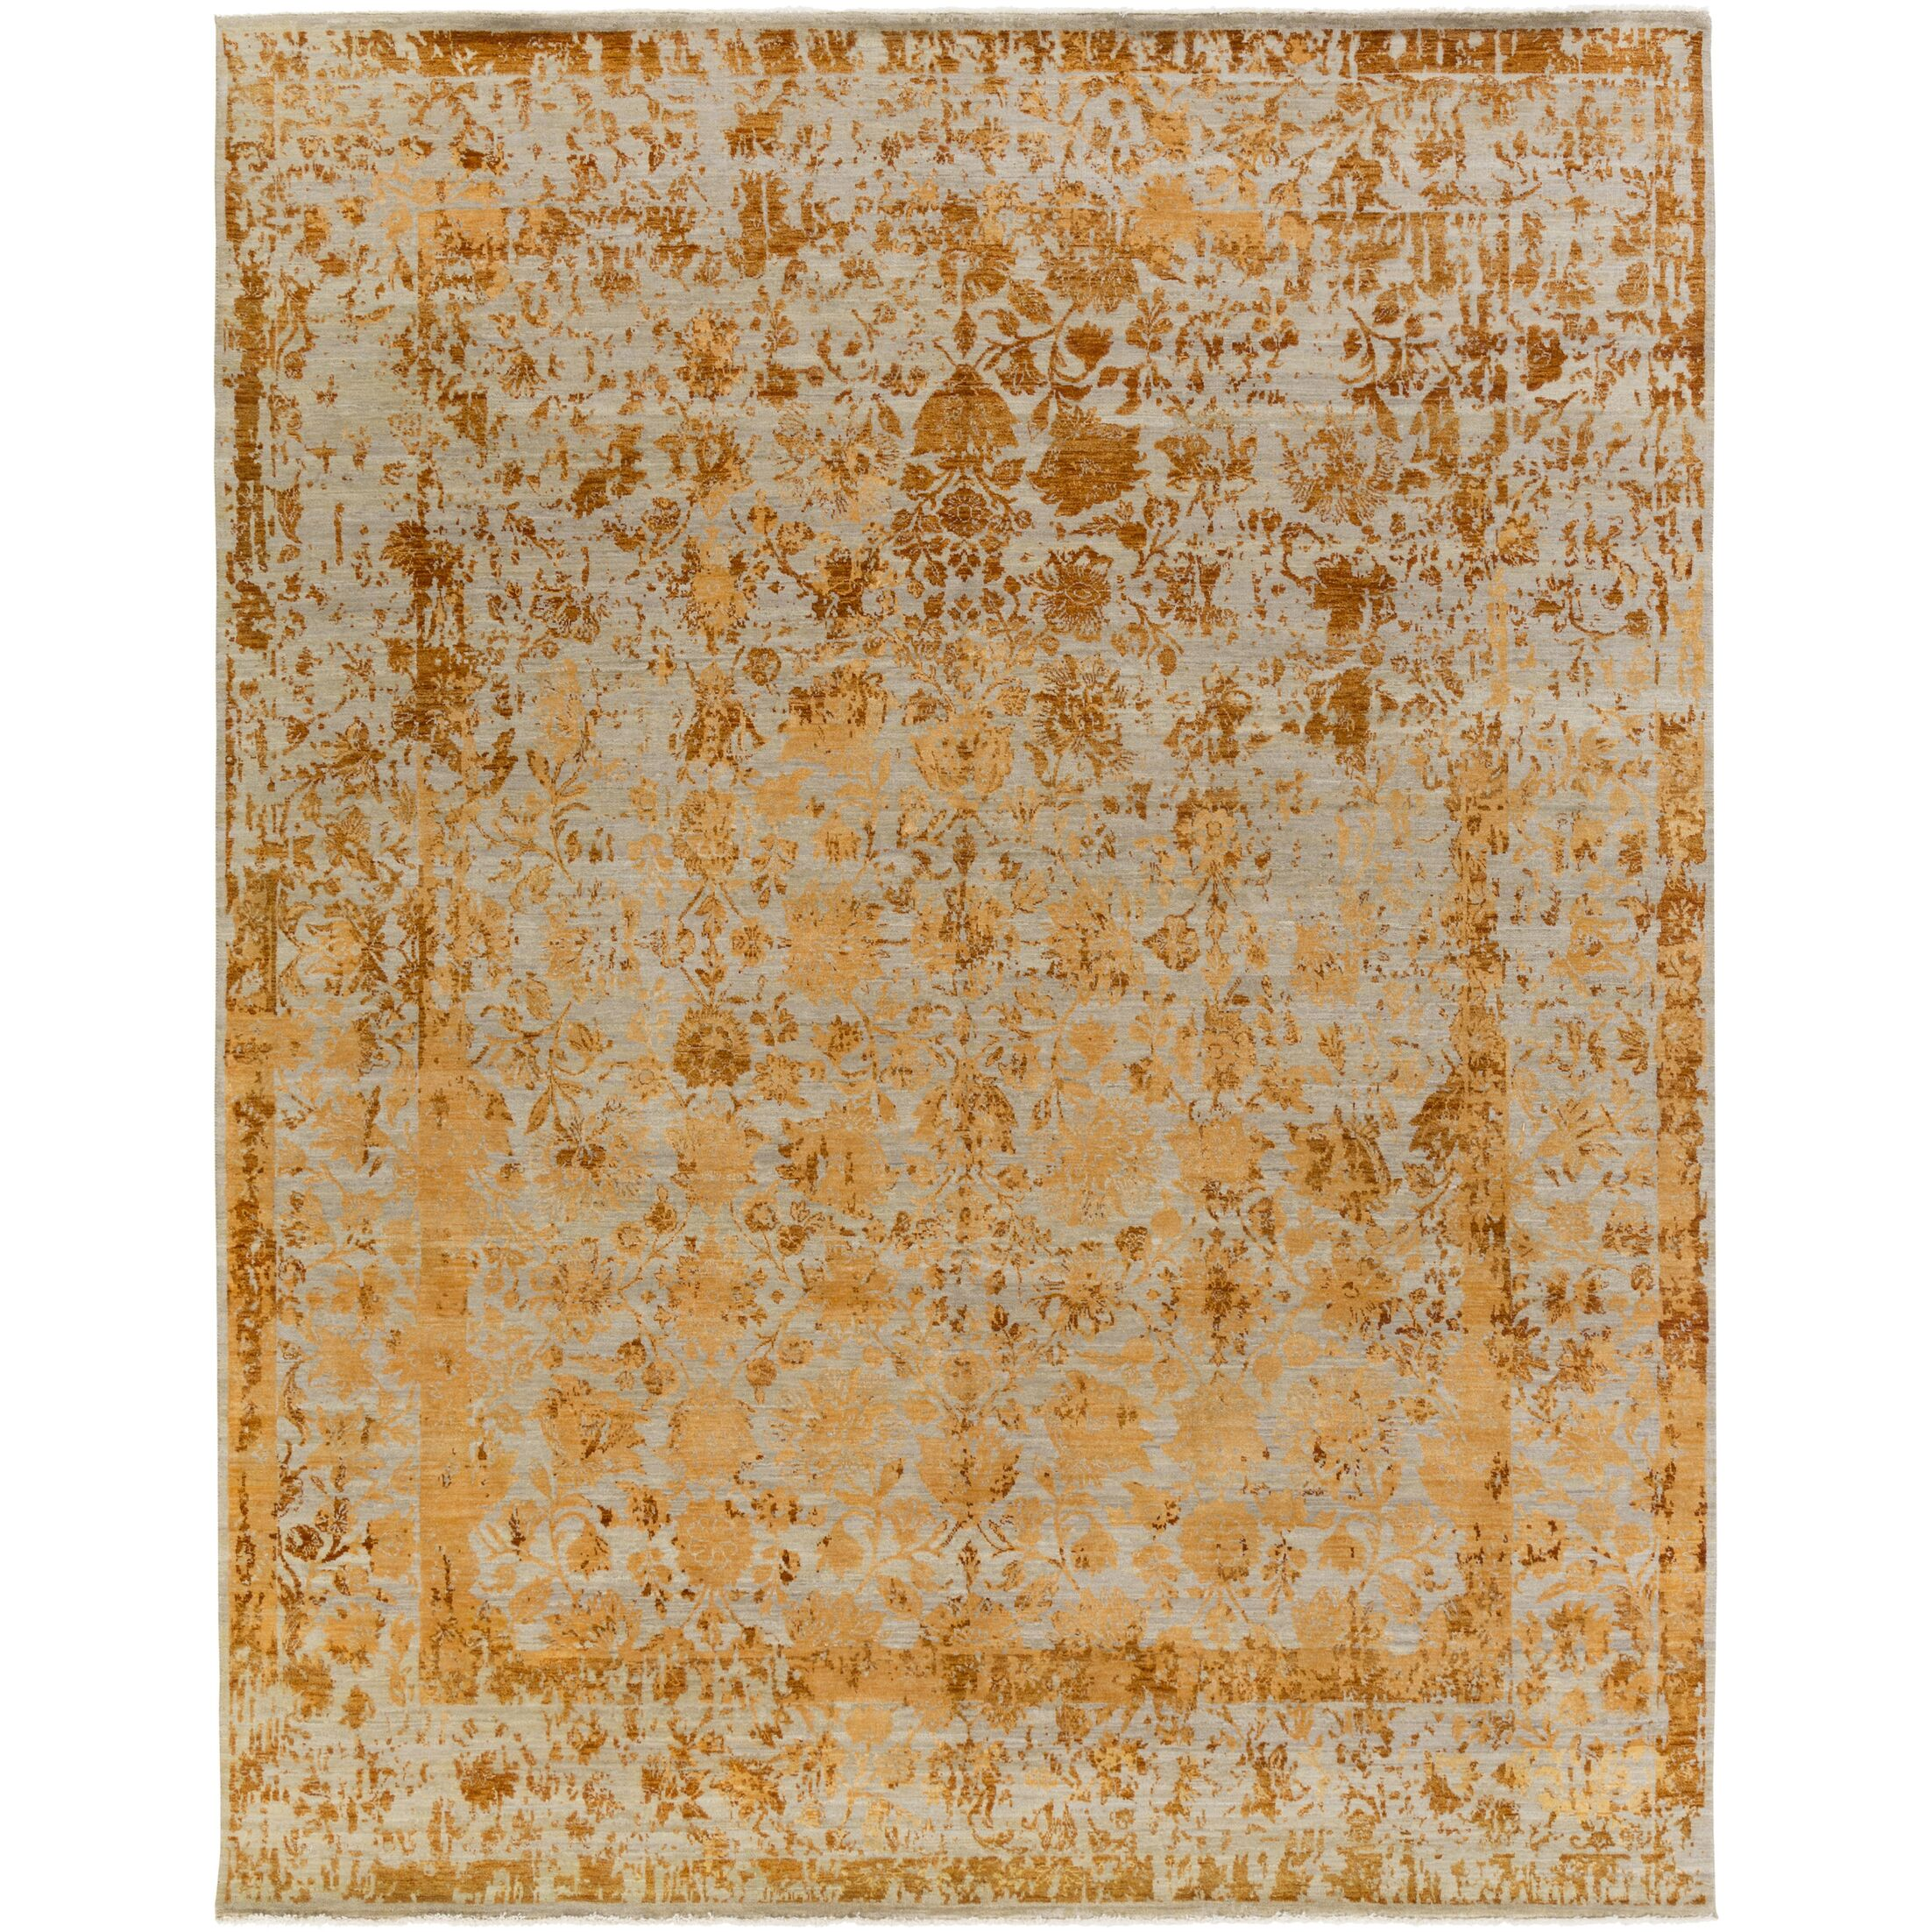 Soussi Hand-Knotted Wool/Silk Brown Area Rug Rug Size: Rectangle 8' x 10'